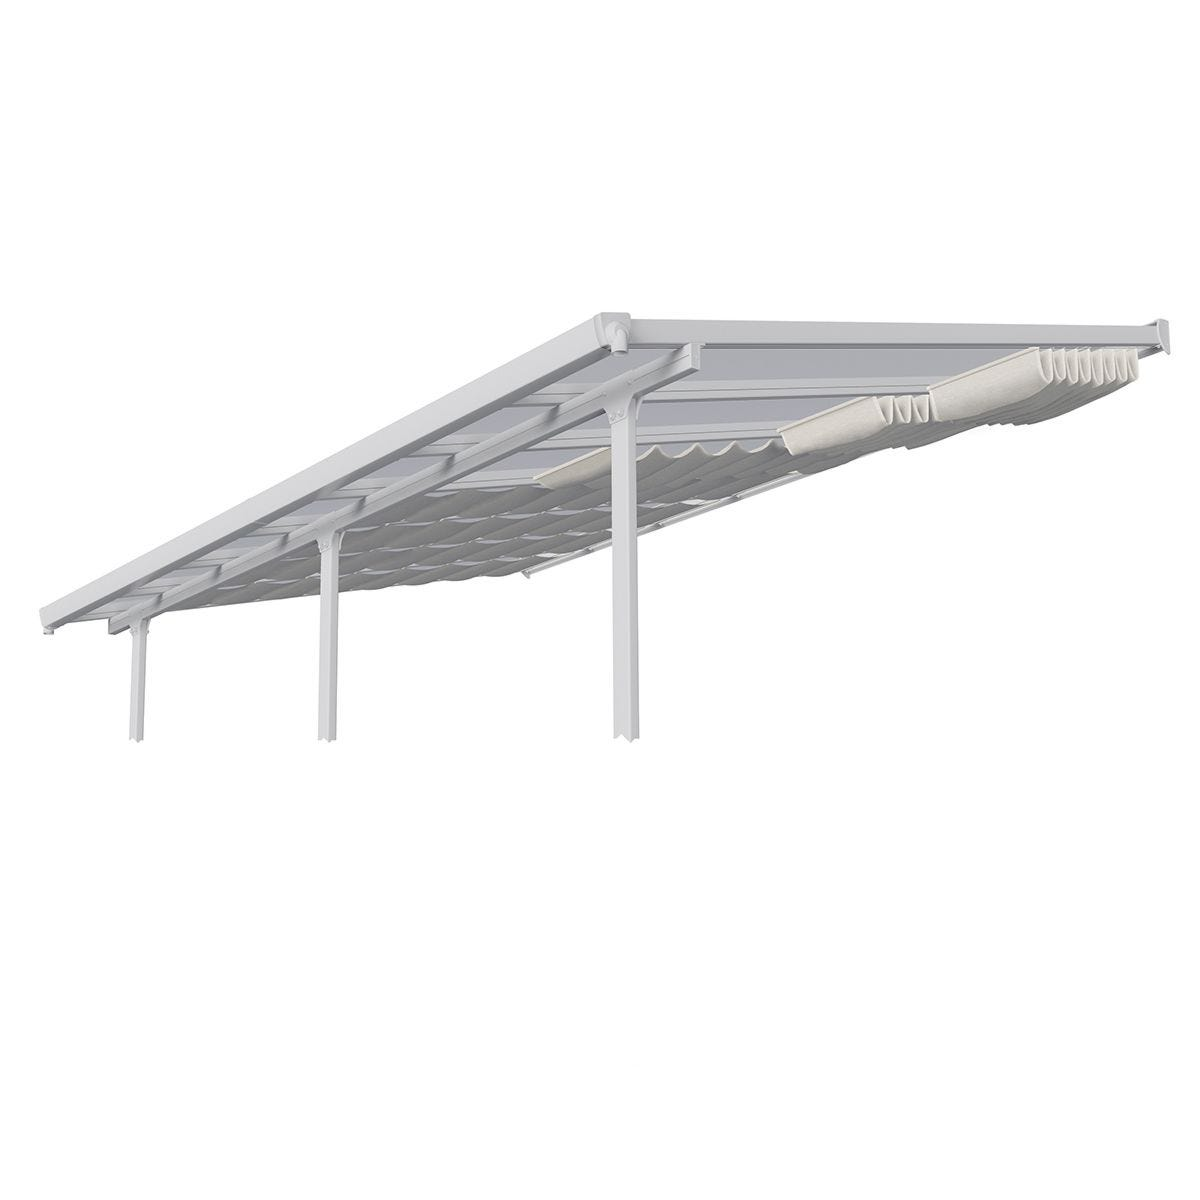 Palram Patio Cover Roof Blinds 3m x 3.05m - White